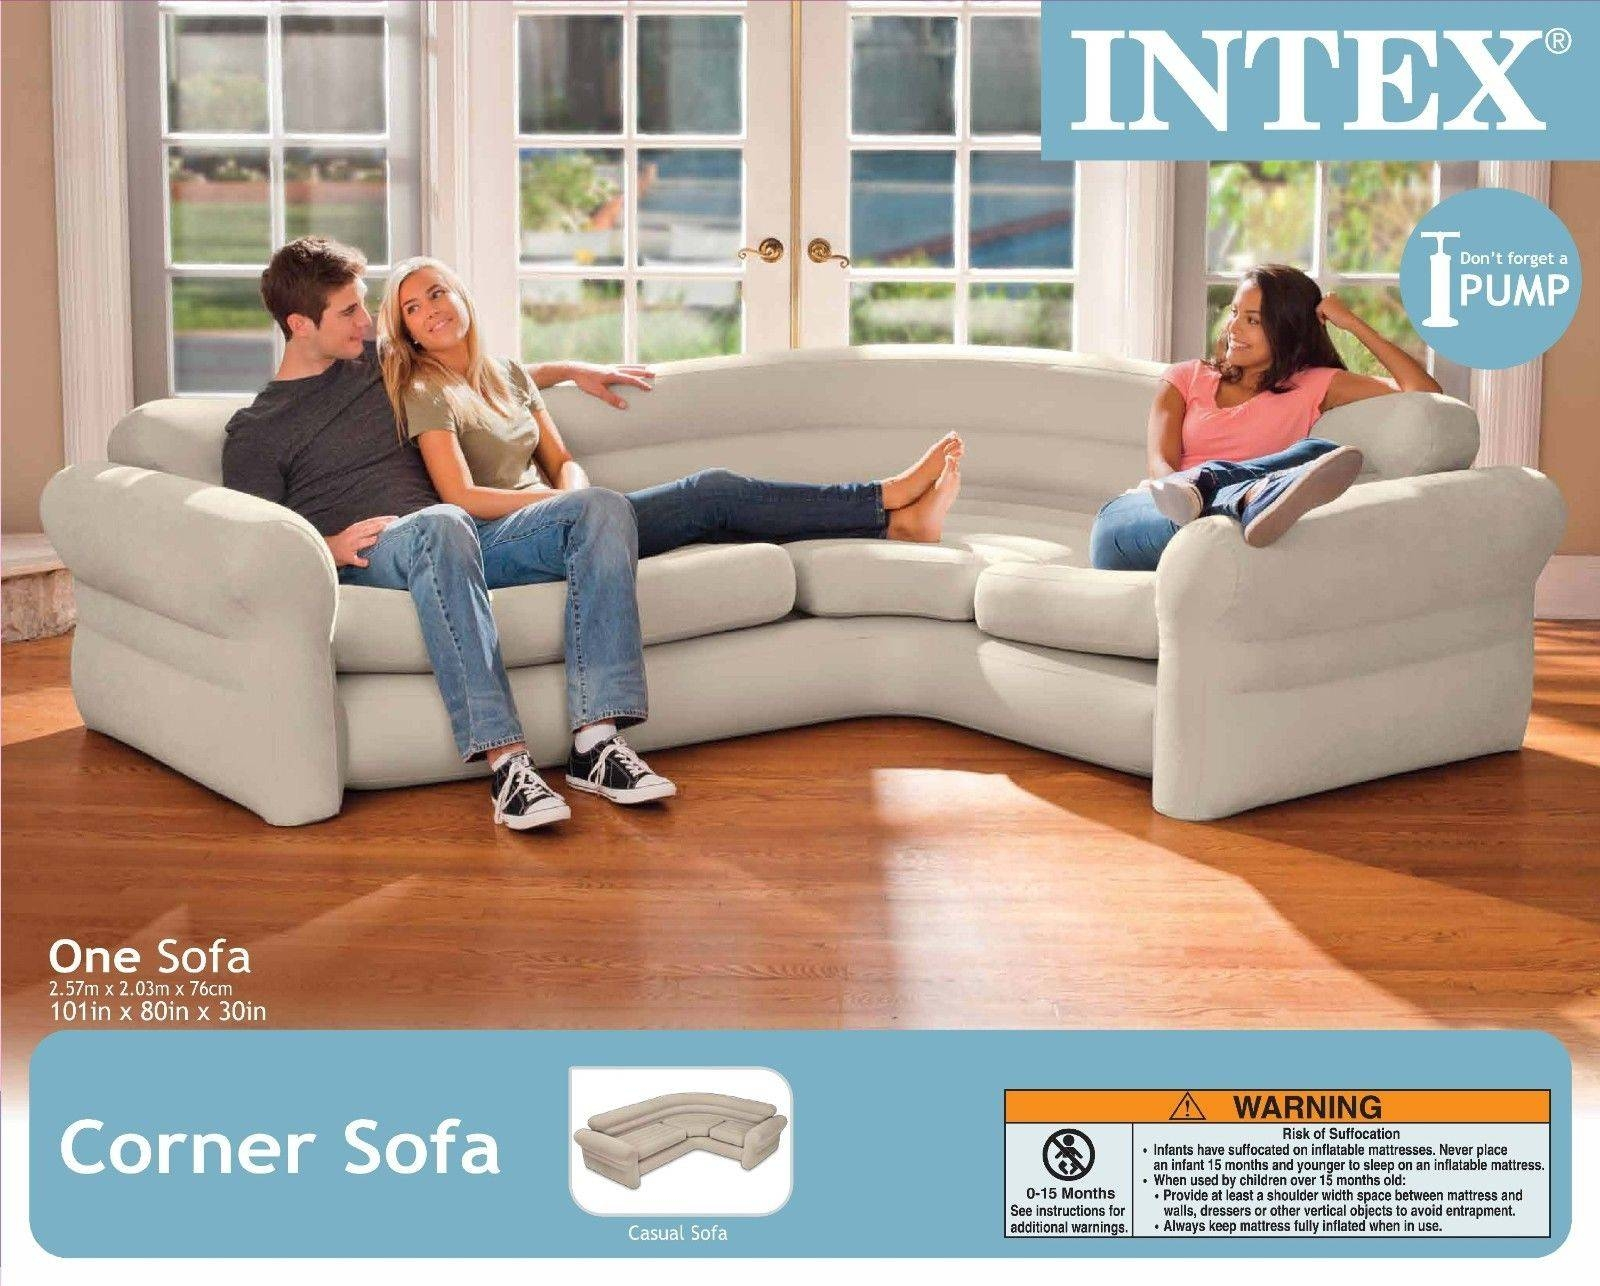 Intex Inflatable Corner Sofa Portable Modern Contemporary Air throughout Intex Inflatable Sofas (Image 6 of 15)